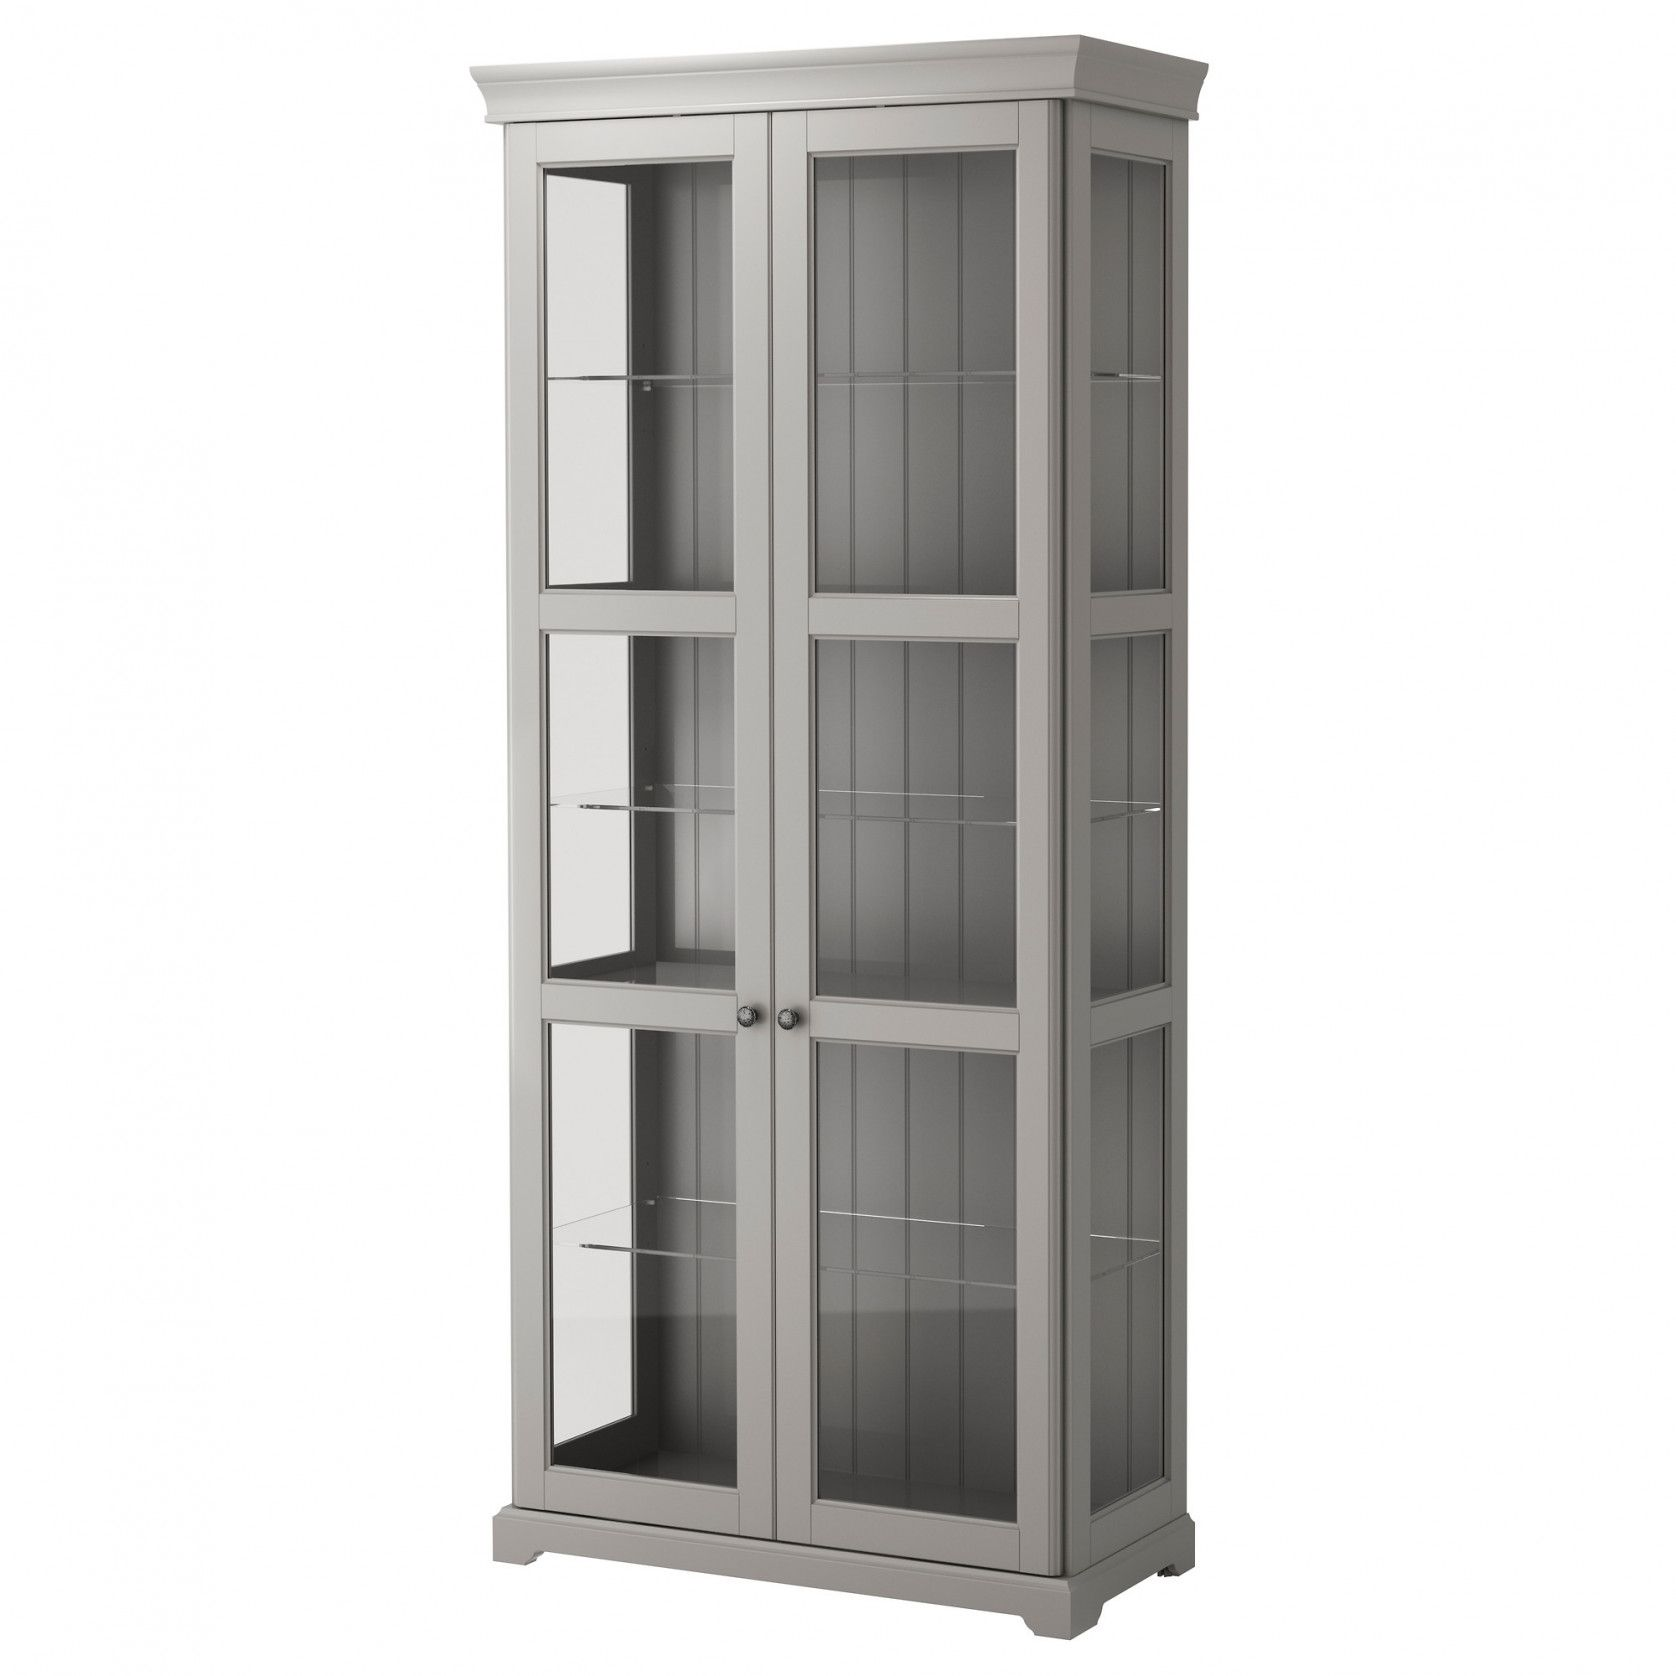 2018 White Display Cabinets With Glass Doors Kitchen Floor Vinyl